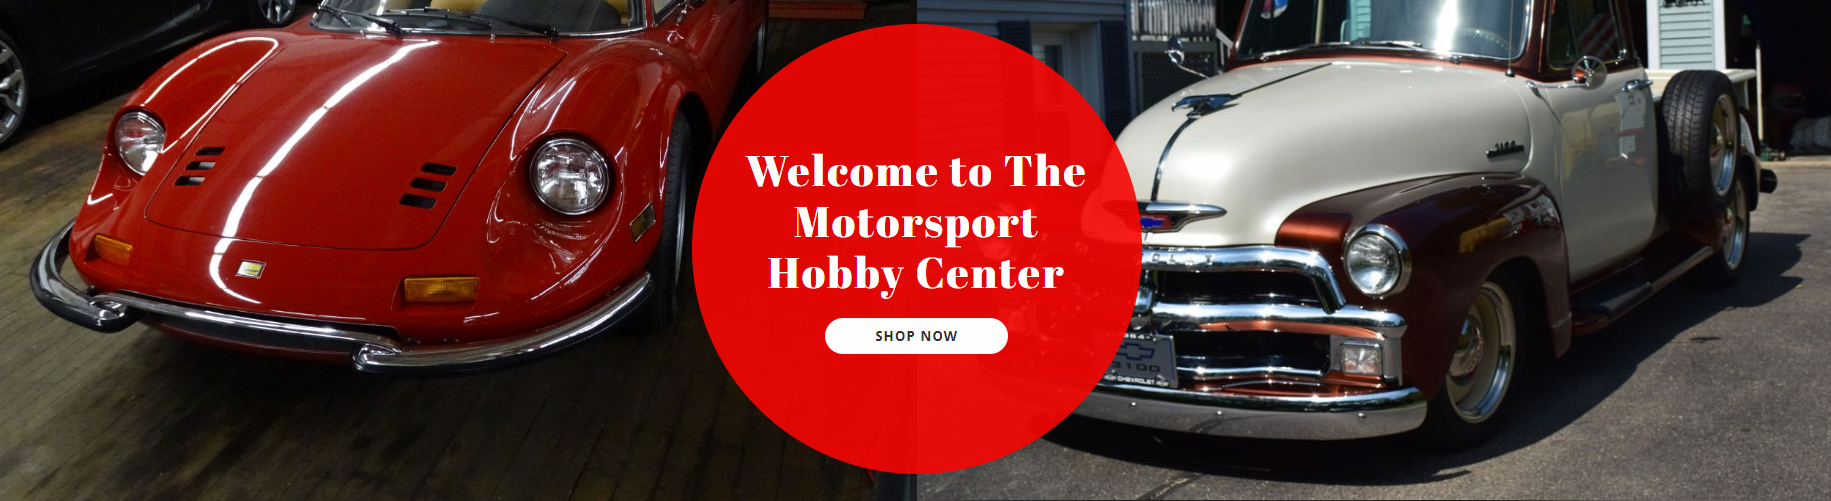 Motorsport Hobby Center Mutual Link Banner.png